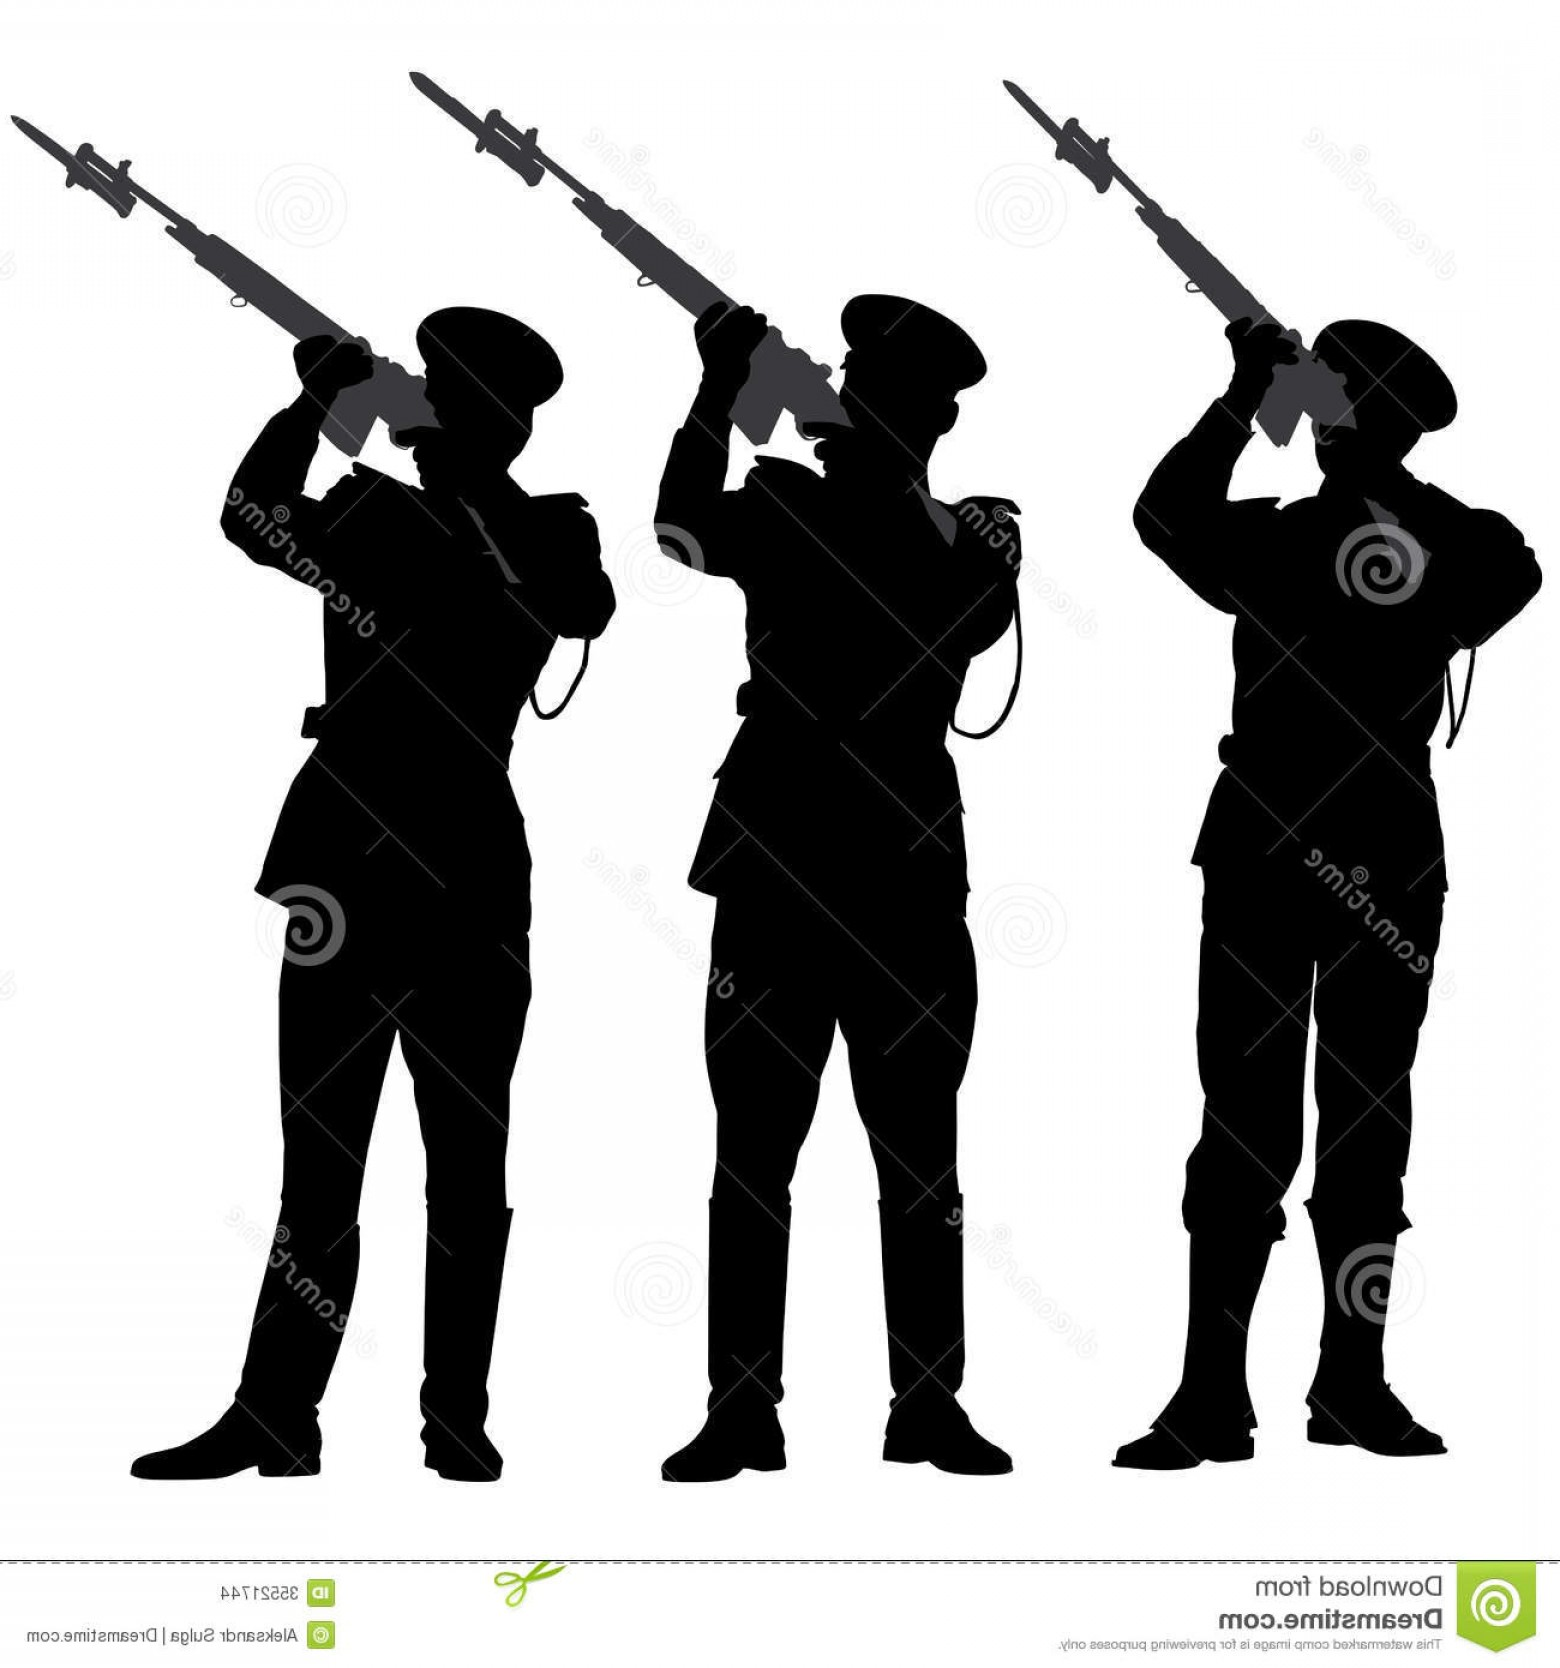 Color Guard Silhouette Vector: Stock Images Honor Guard Silhouette Fire Volley Remembrance White Background Image